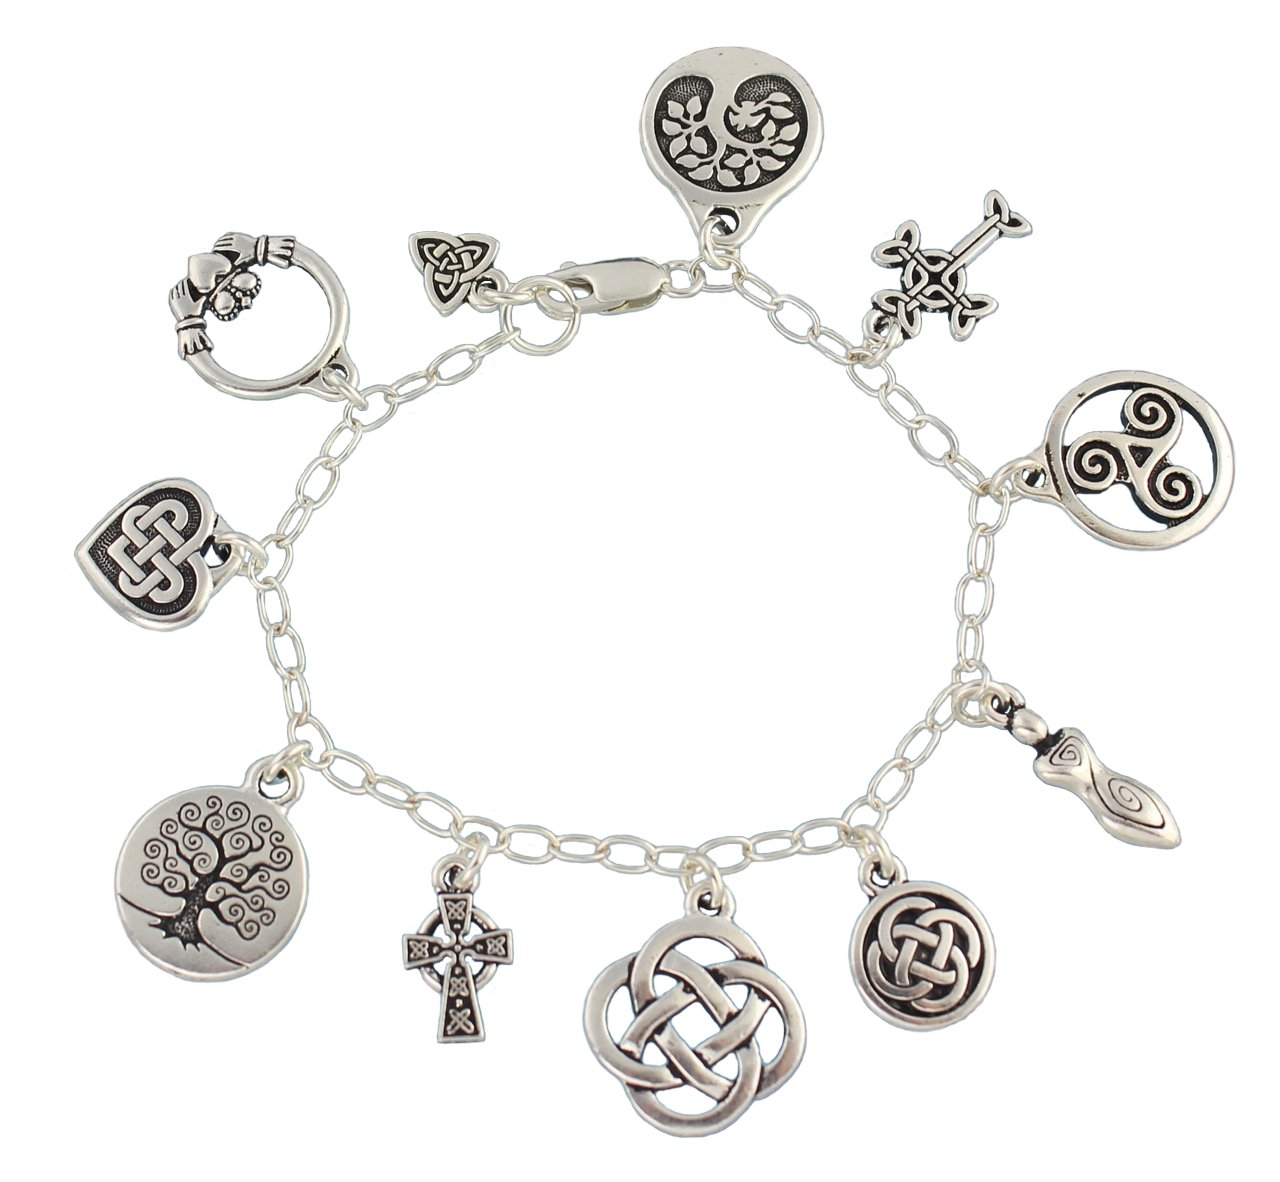 Celtic Symbols Silver Charm Bracelet - Claddagh, Celtic Knots, Tree of Life, Cross, Goddess- 6.5 Inches (XS)